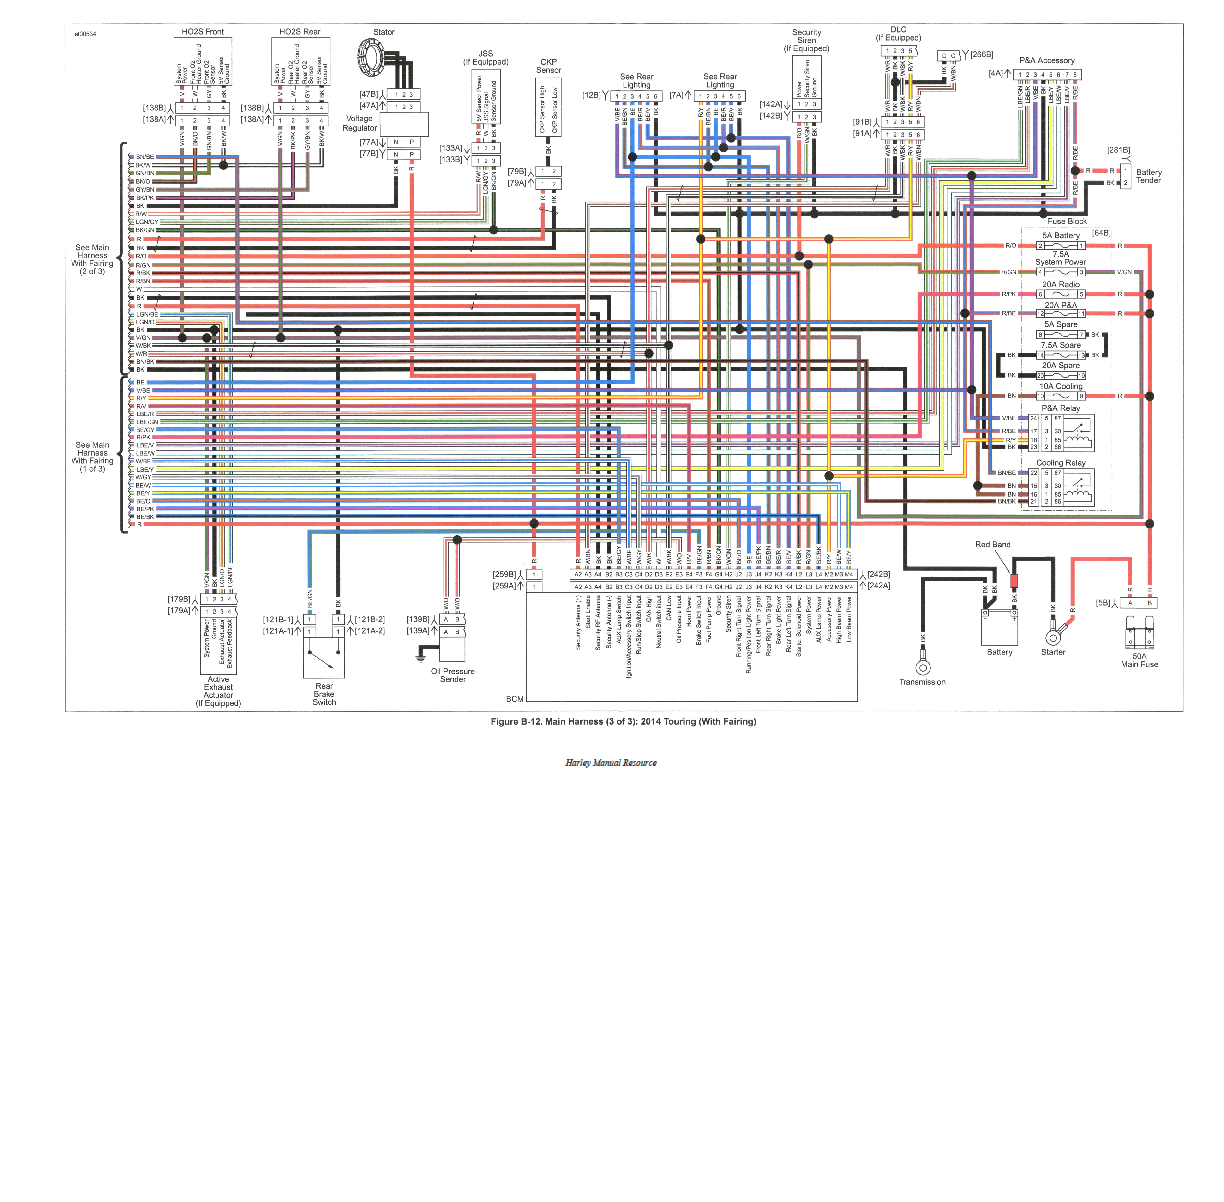 Heritage Hd Wiring Diagram - Wiring Diagrams List on